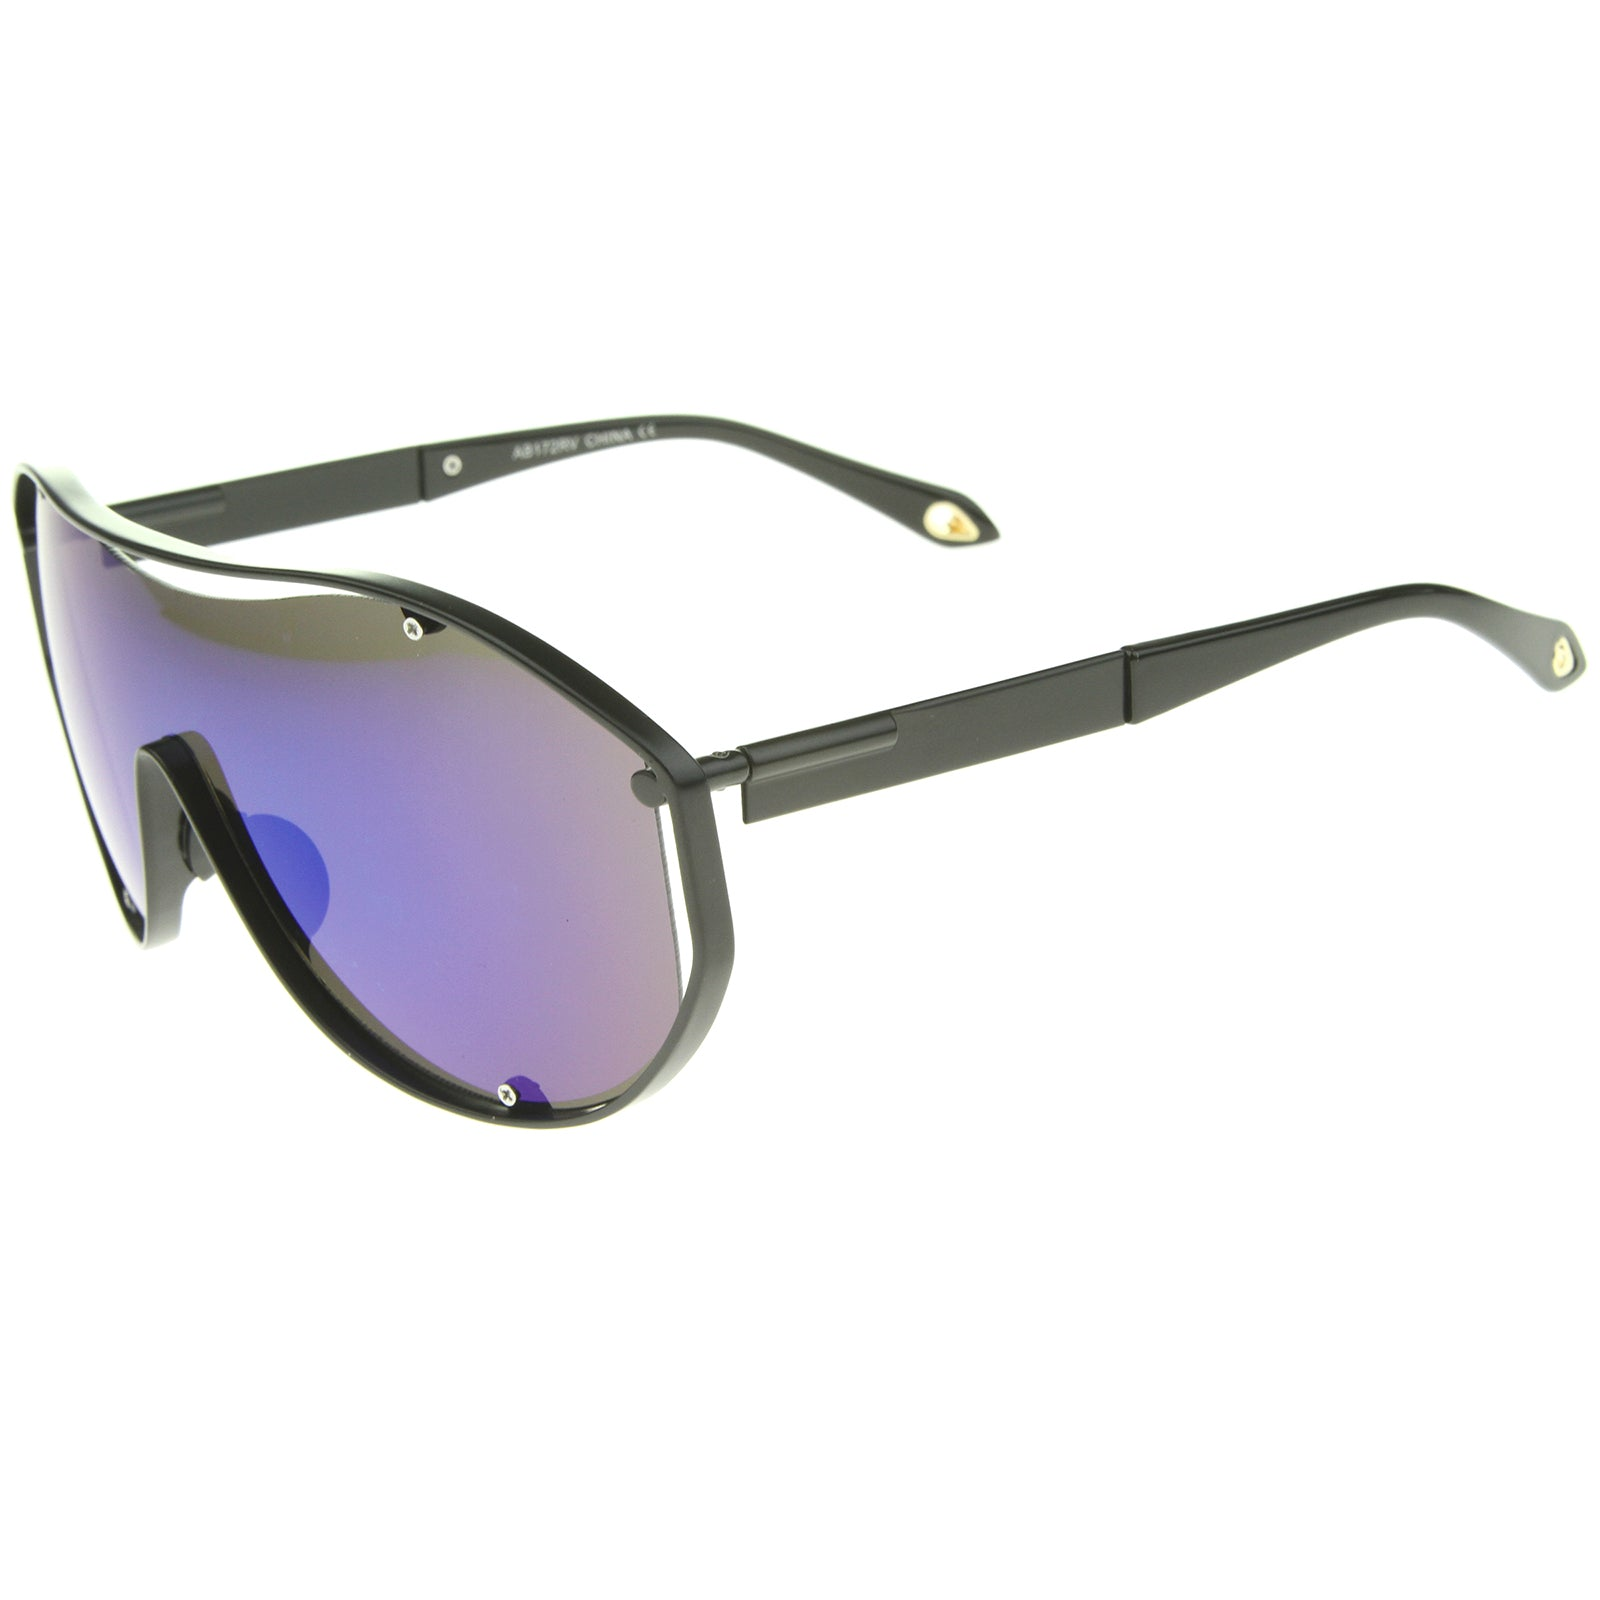 Modern Fashion Metal Frame Inner Rimless Mirror Lens Shield Sunglasses - sunglass.la - 11